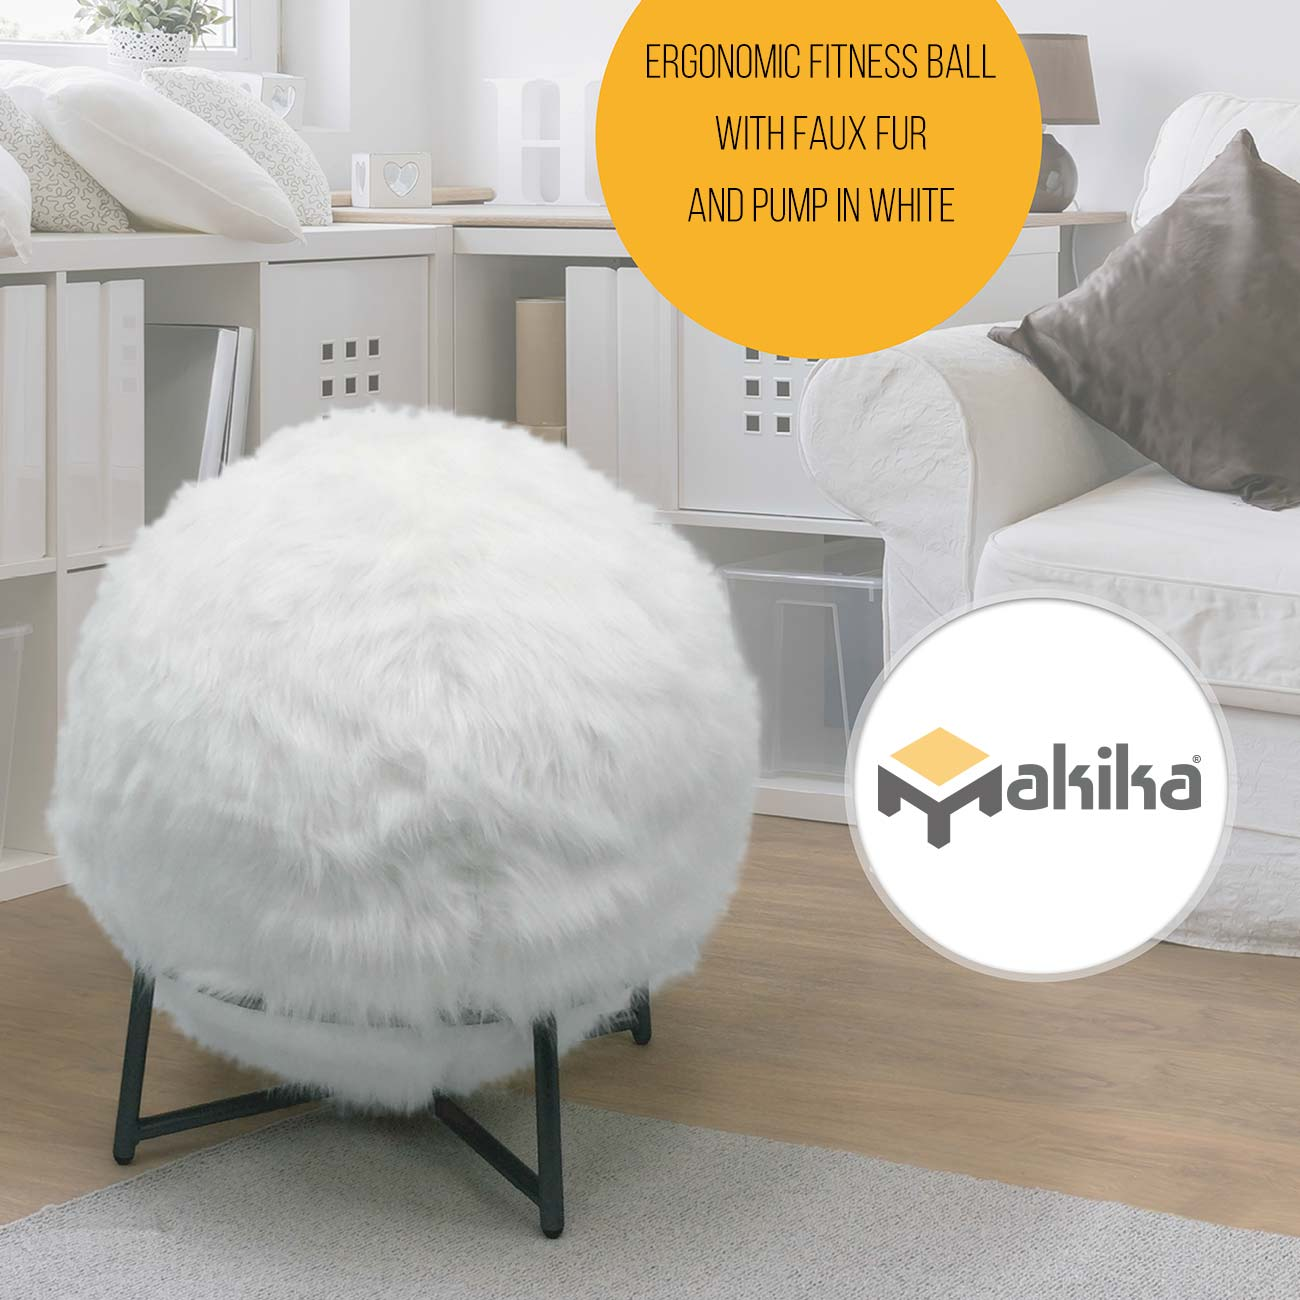 Balance and physical therapy - Makika Exercise Ball For Fitness Yoga Balance Physical Therapy With Faux Fur And Pump In White